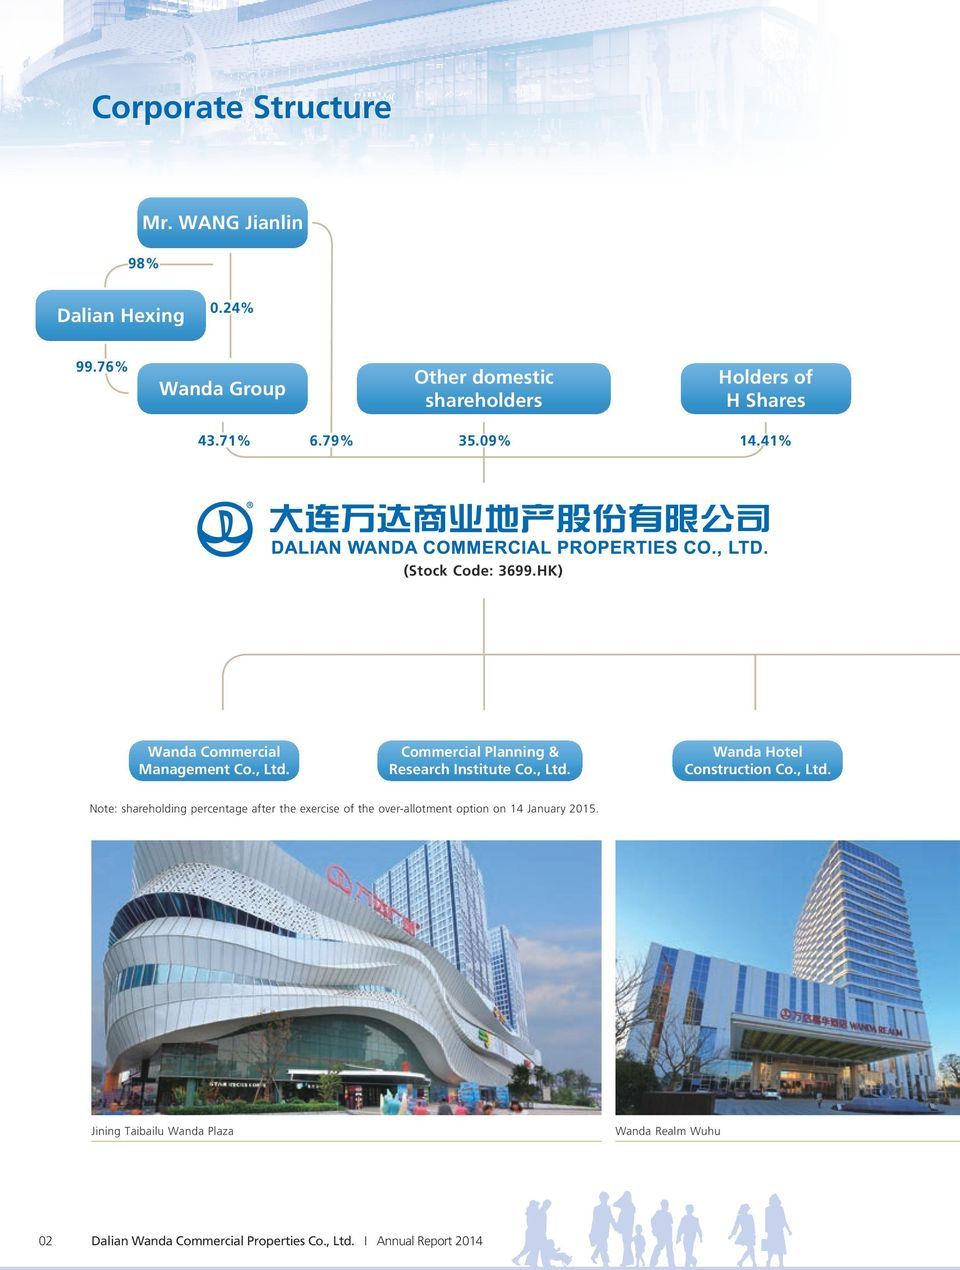 HK) Wanda Commercial Management Co., Ltd. Commercial Planning & Research Institute Co., Ltd. Wanda Hotel Construction Co.